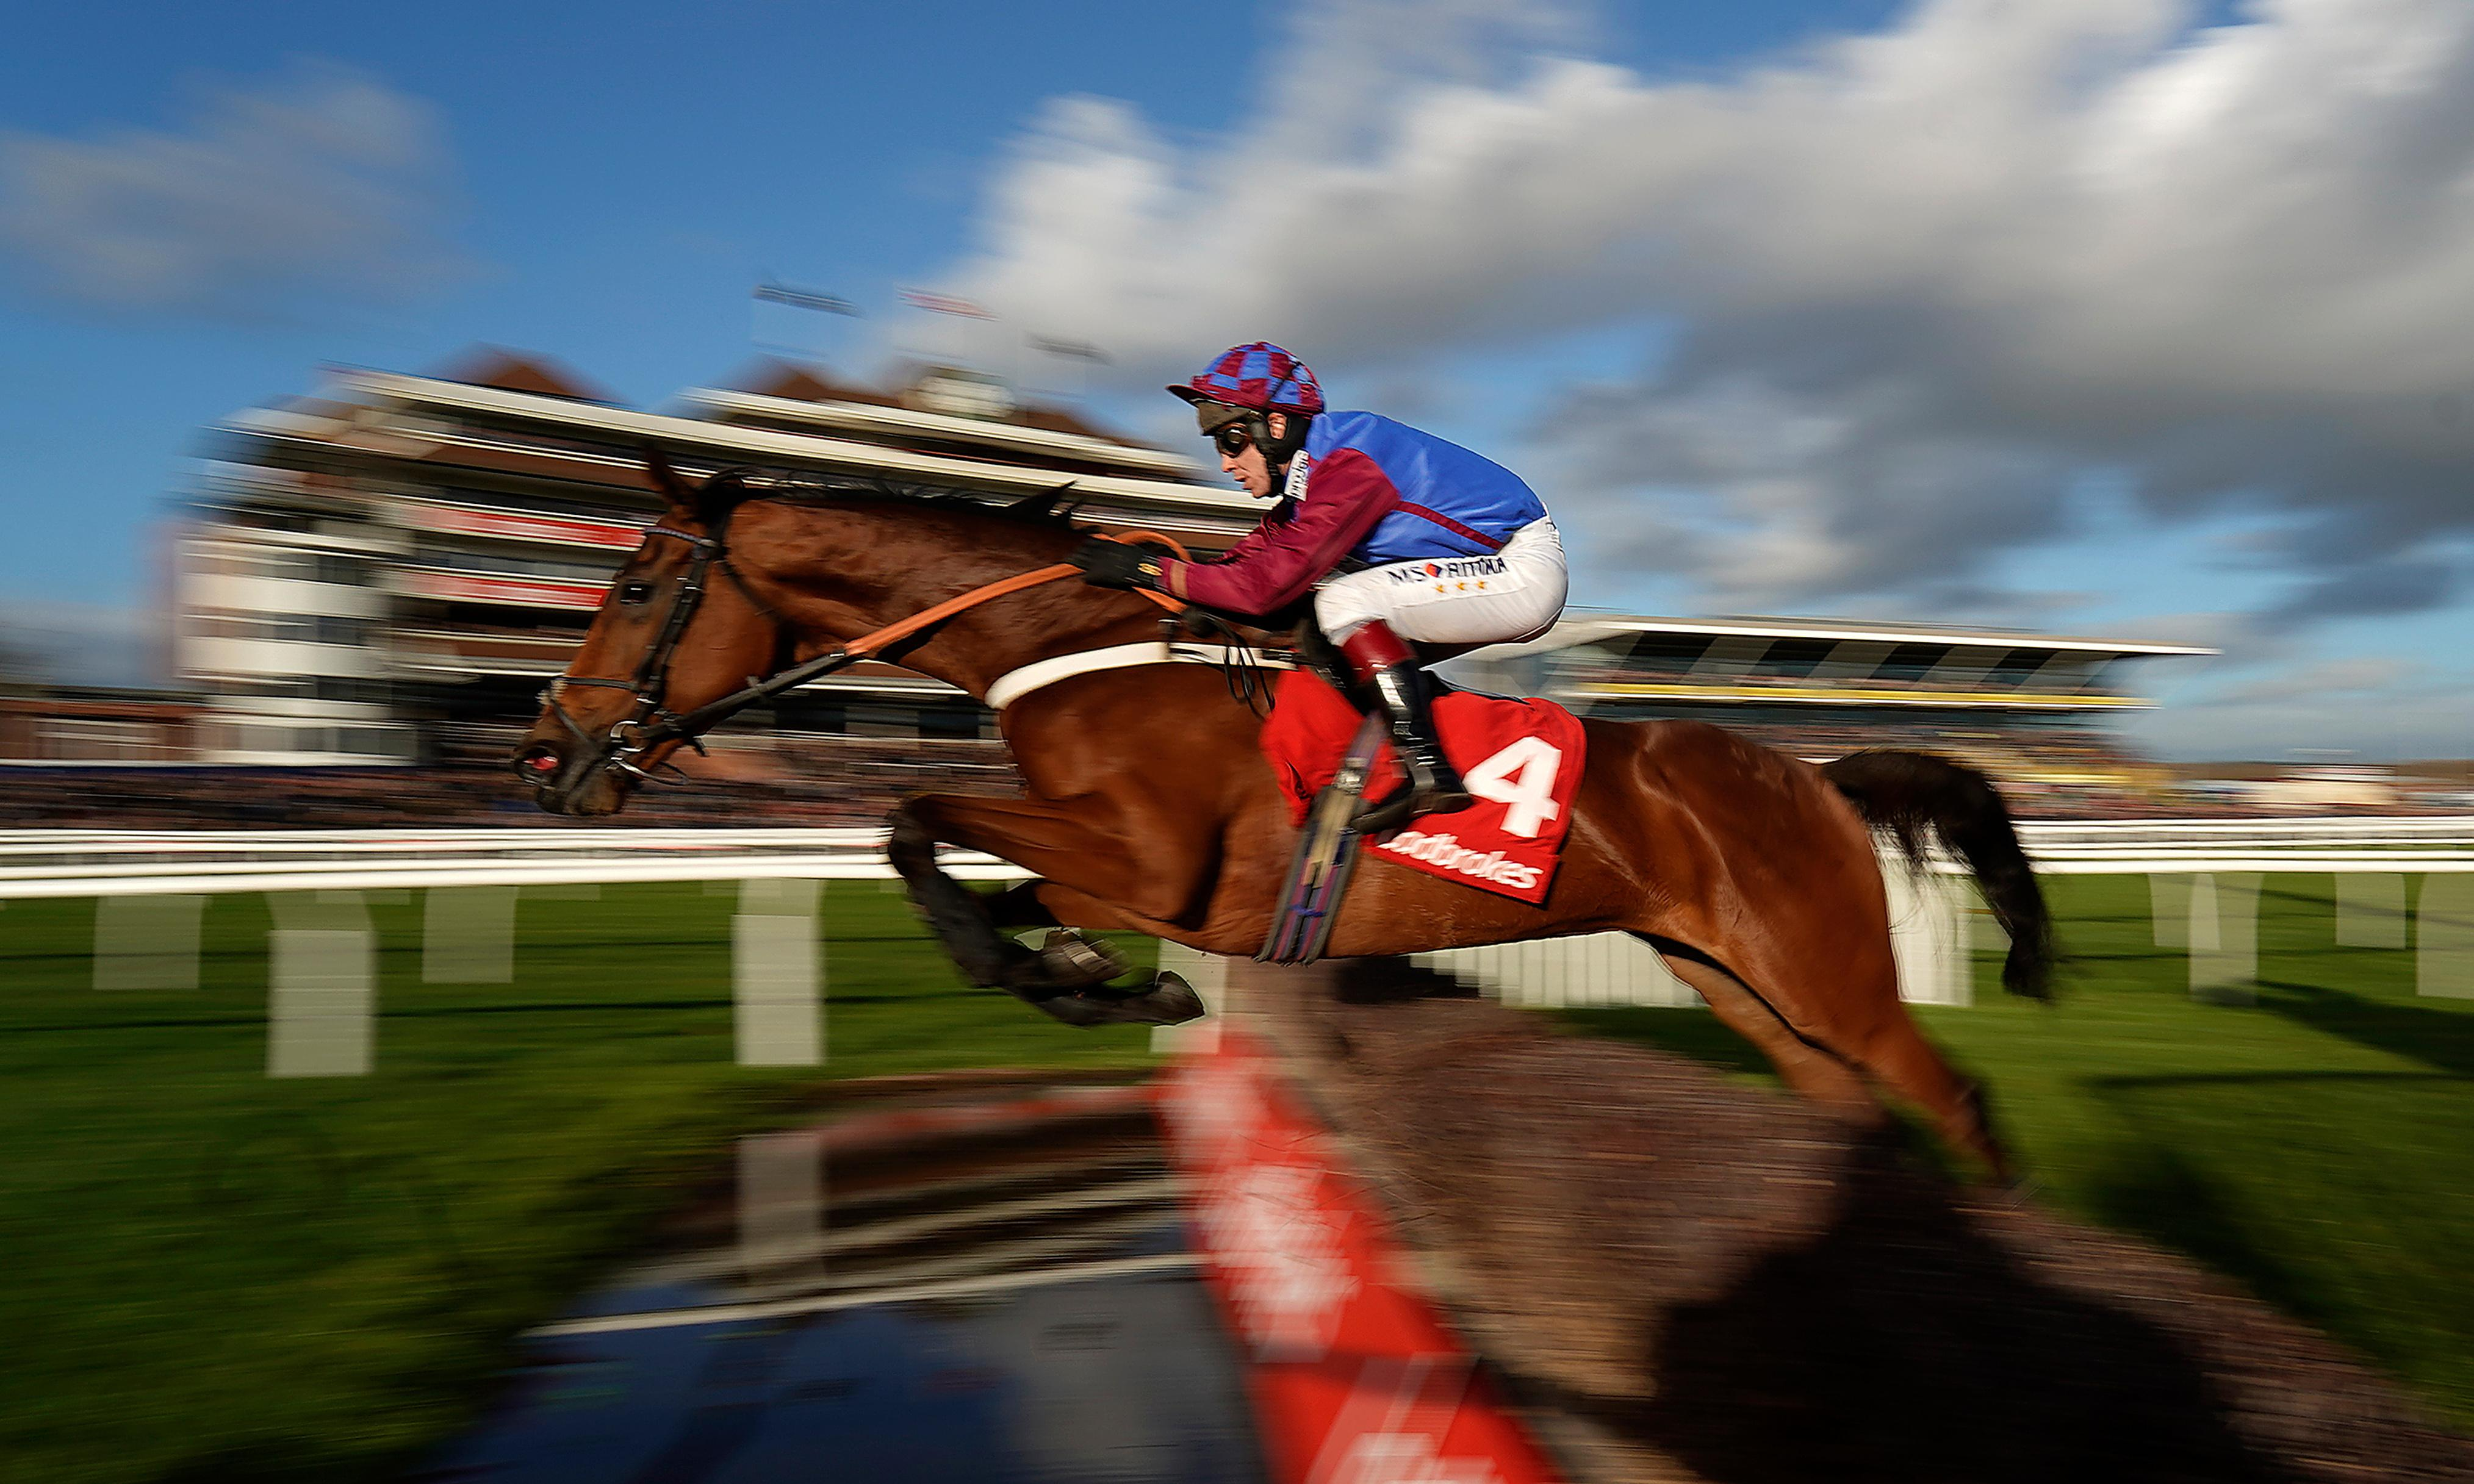 Talking Horses: Bank on Sizing Tennessee in the Ladbrokes Trophy